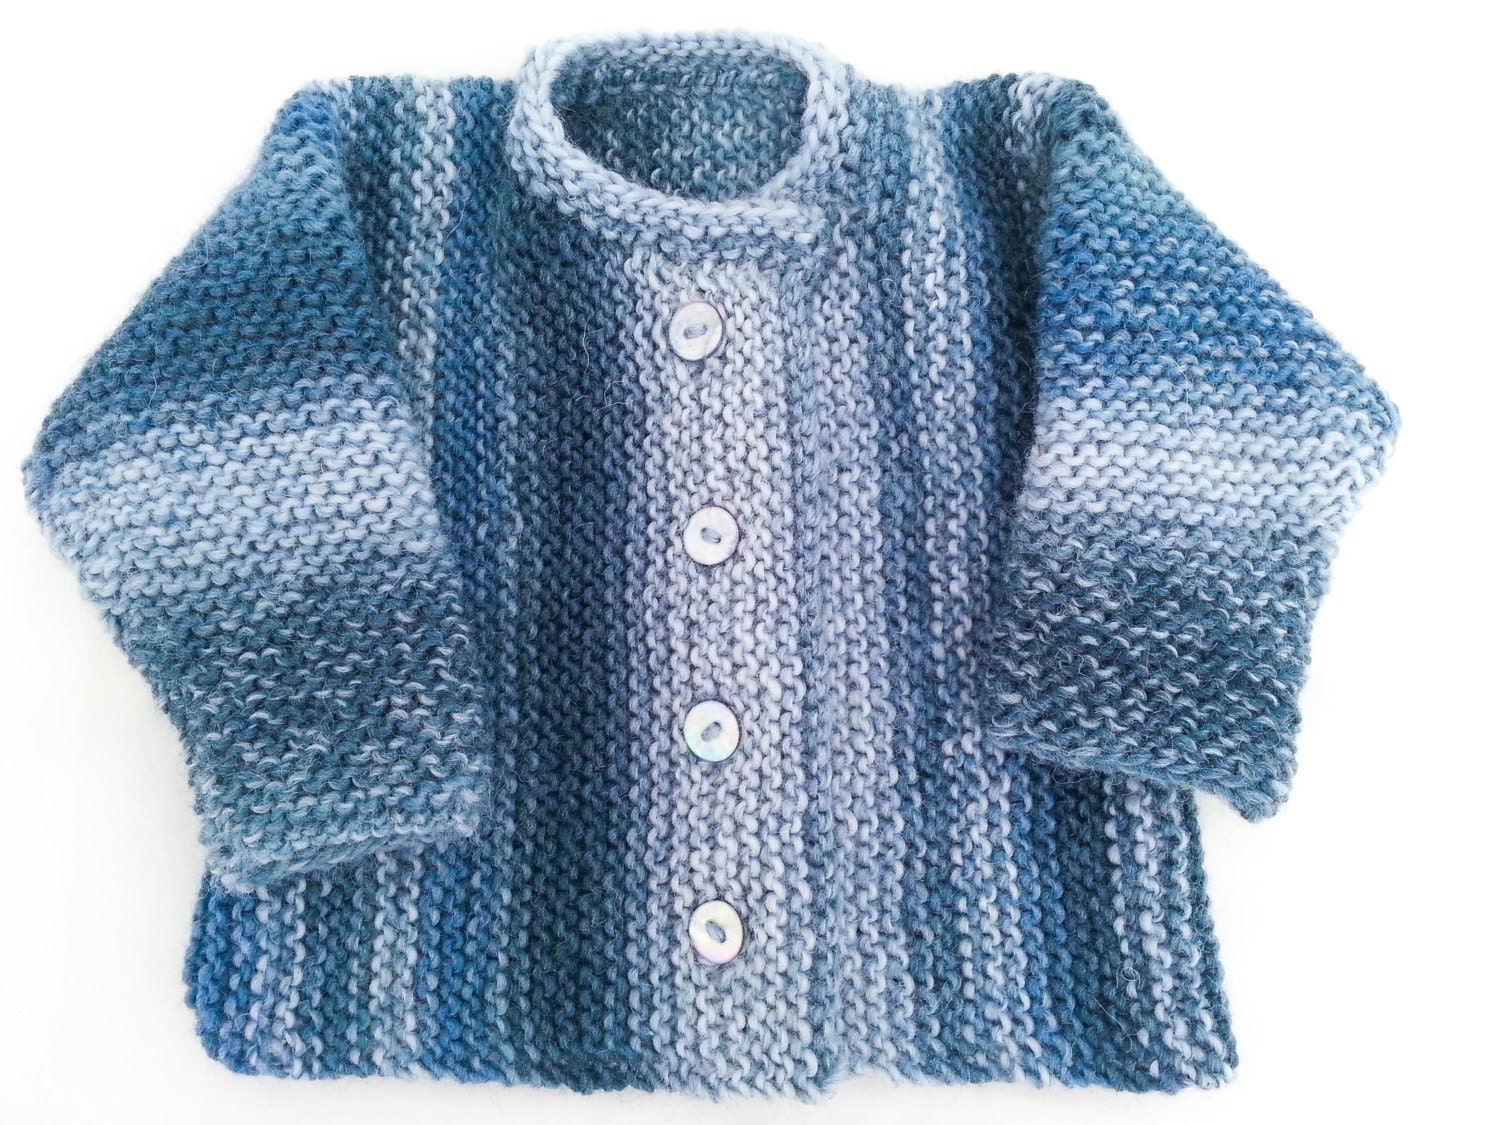 Knitting Designs For Baby Sweaters : Knitting pattern garter stitch baby cardigan sweater